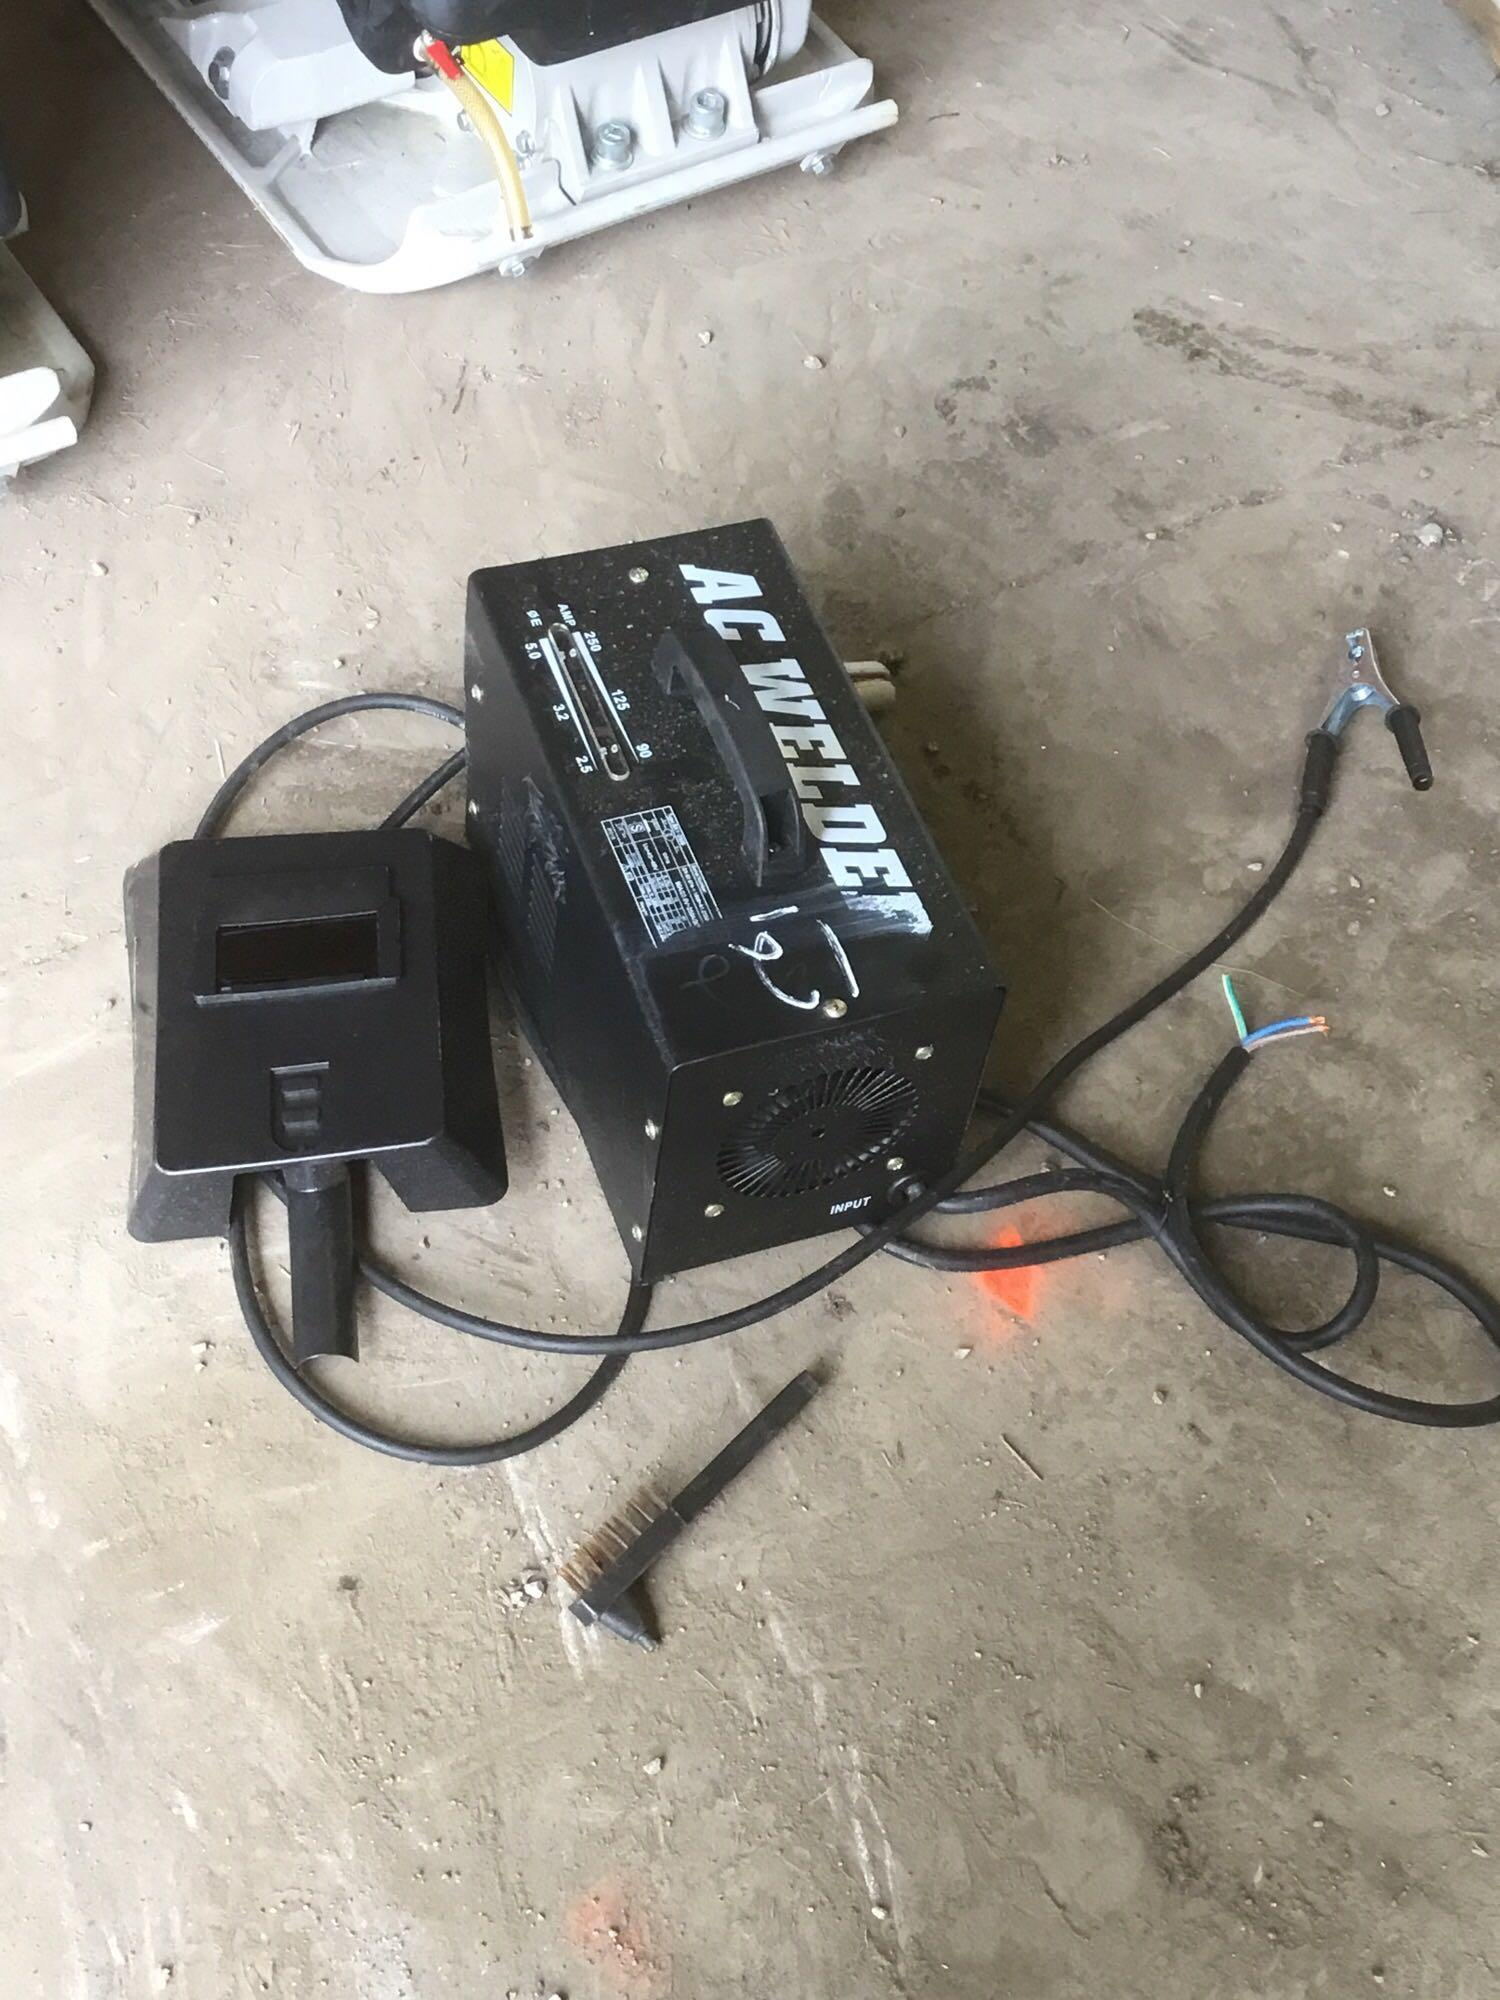 NEW 250 AMP ELECTRIC ARC WELDER NEW SUPPORT EQUIPMENT